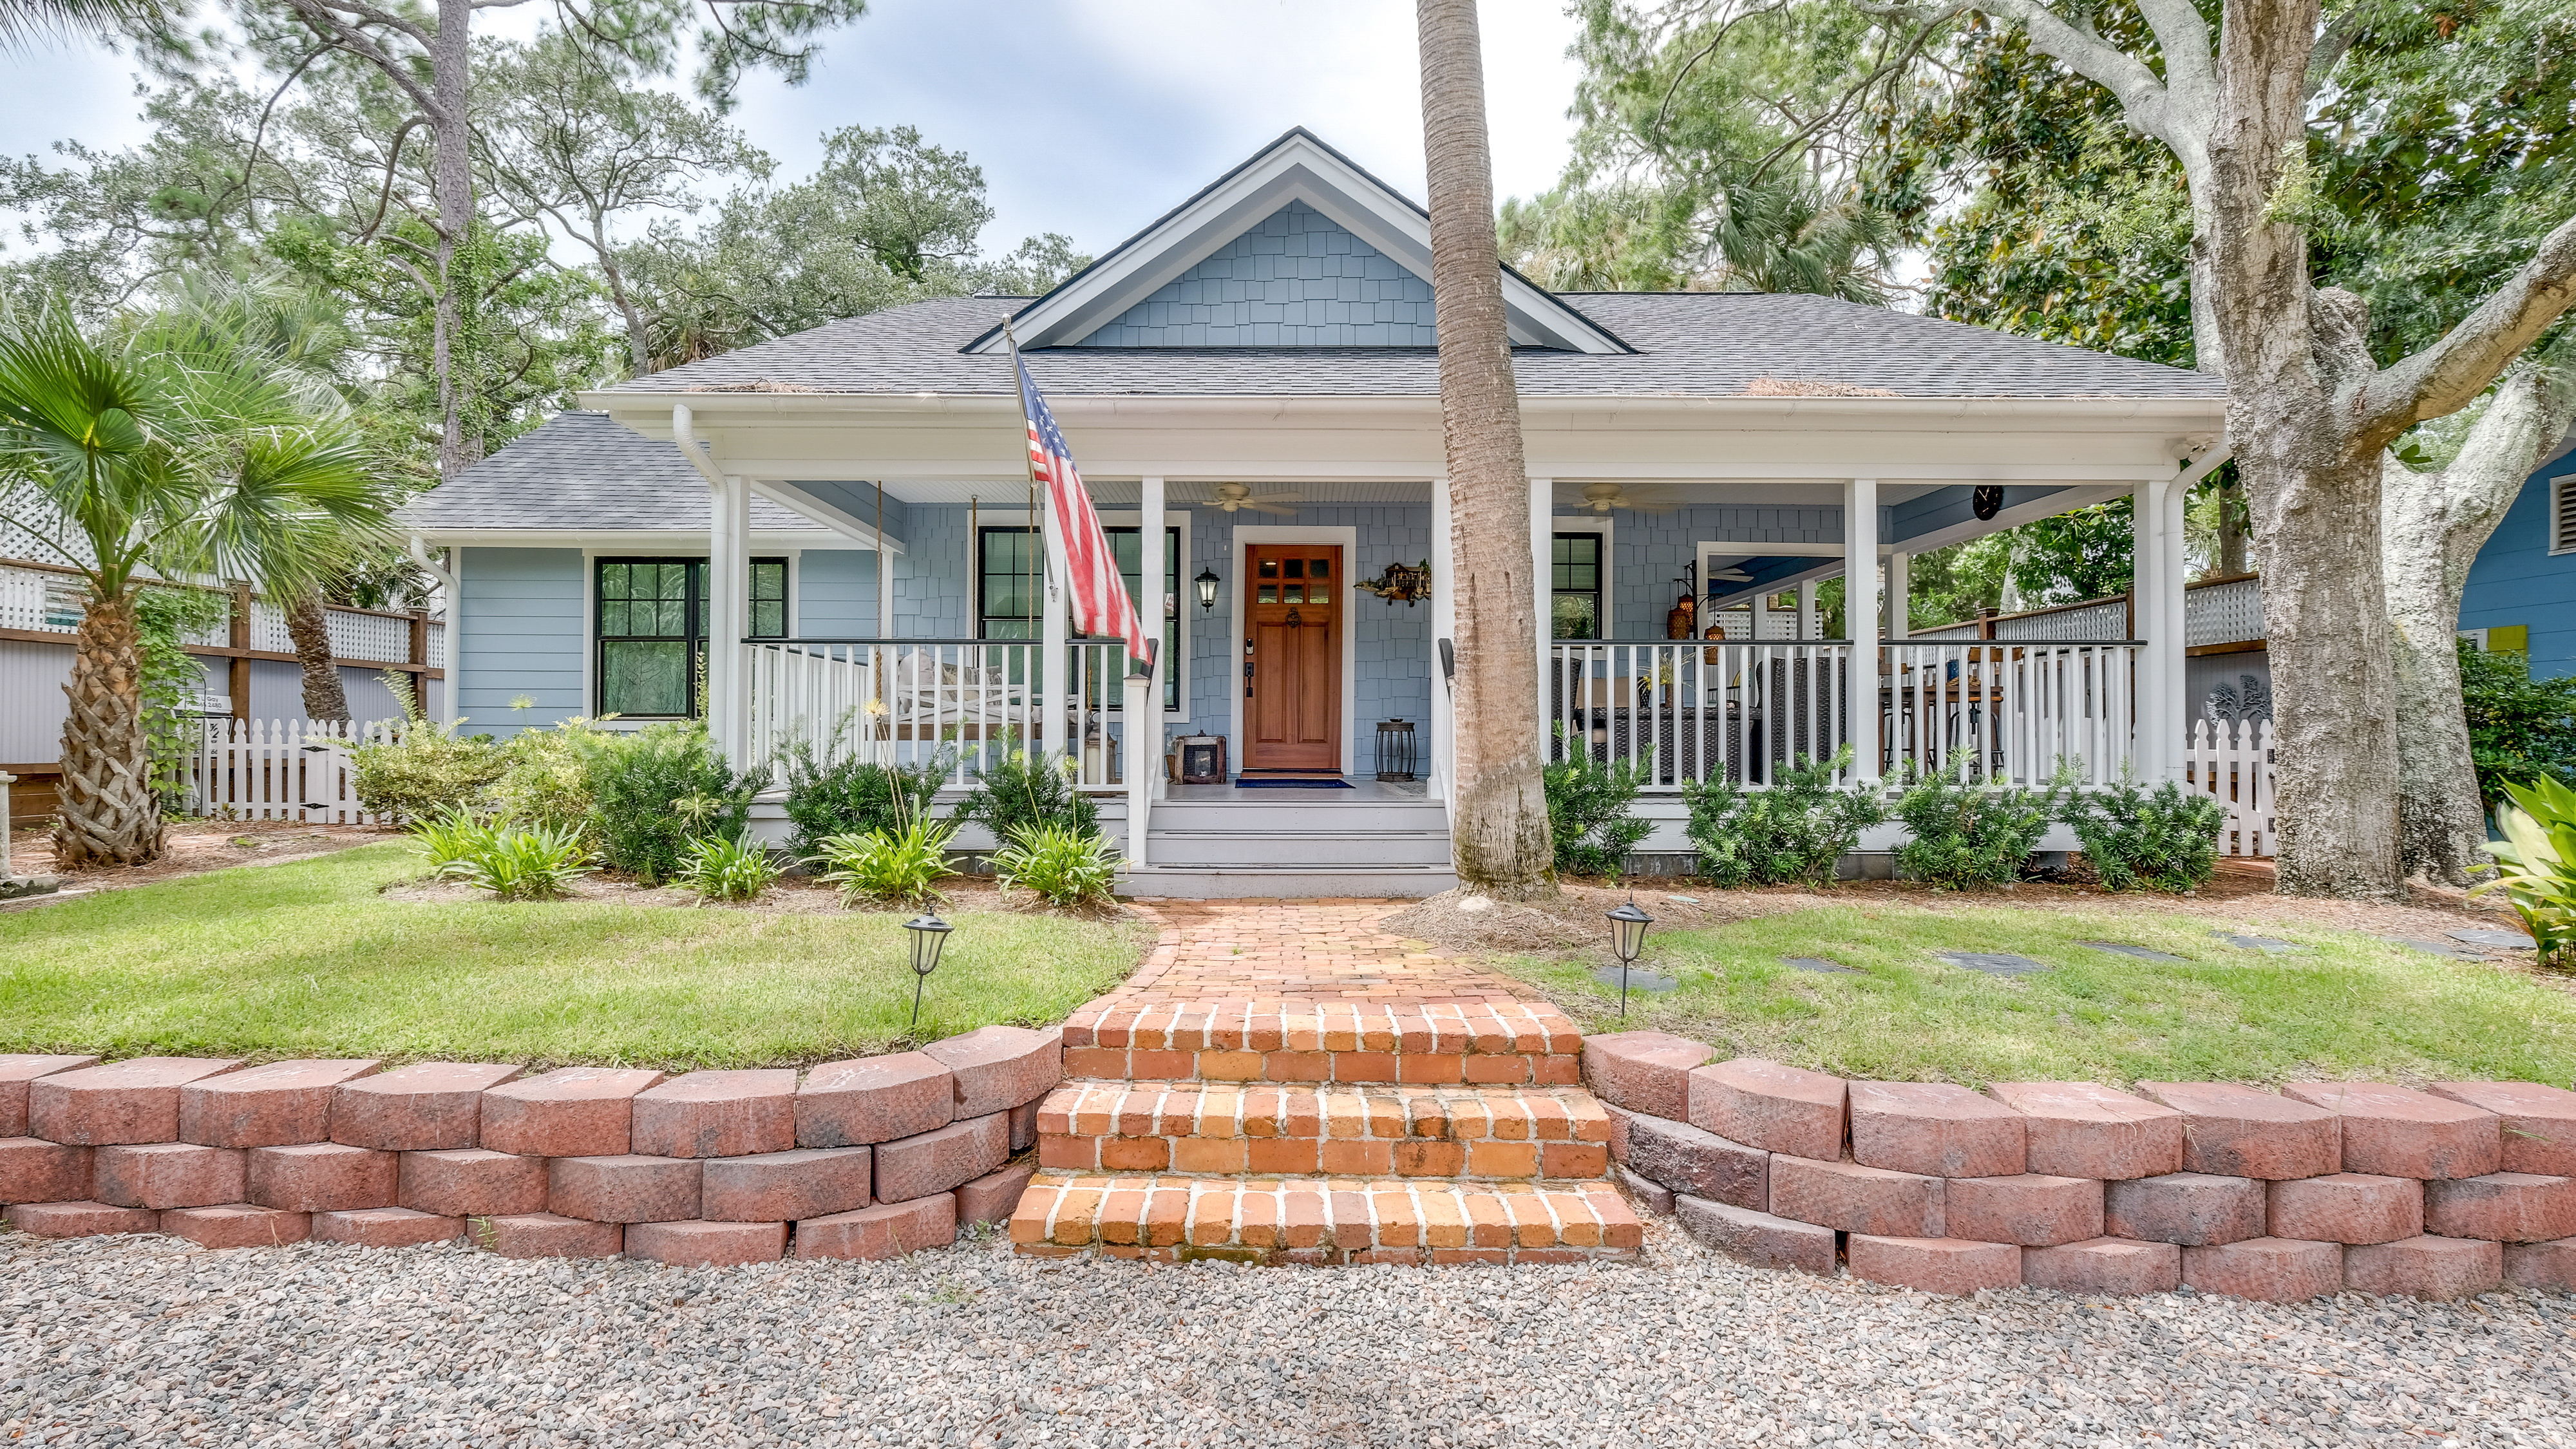 Tybee Island GA Vacation Rental Southern charm abounds